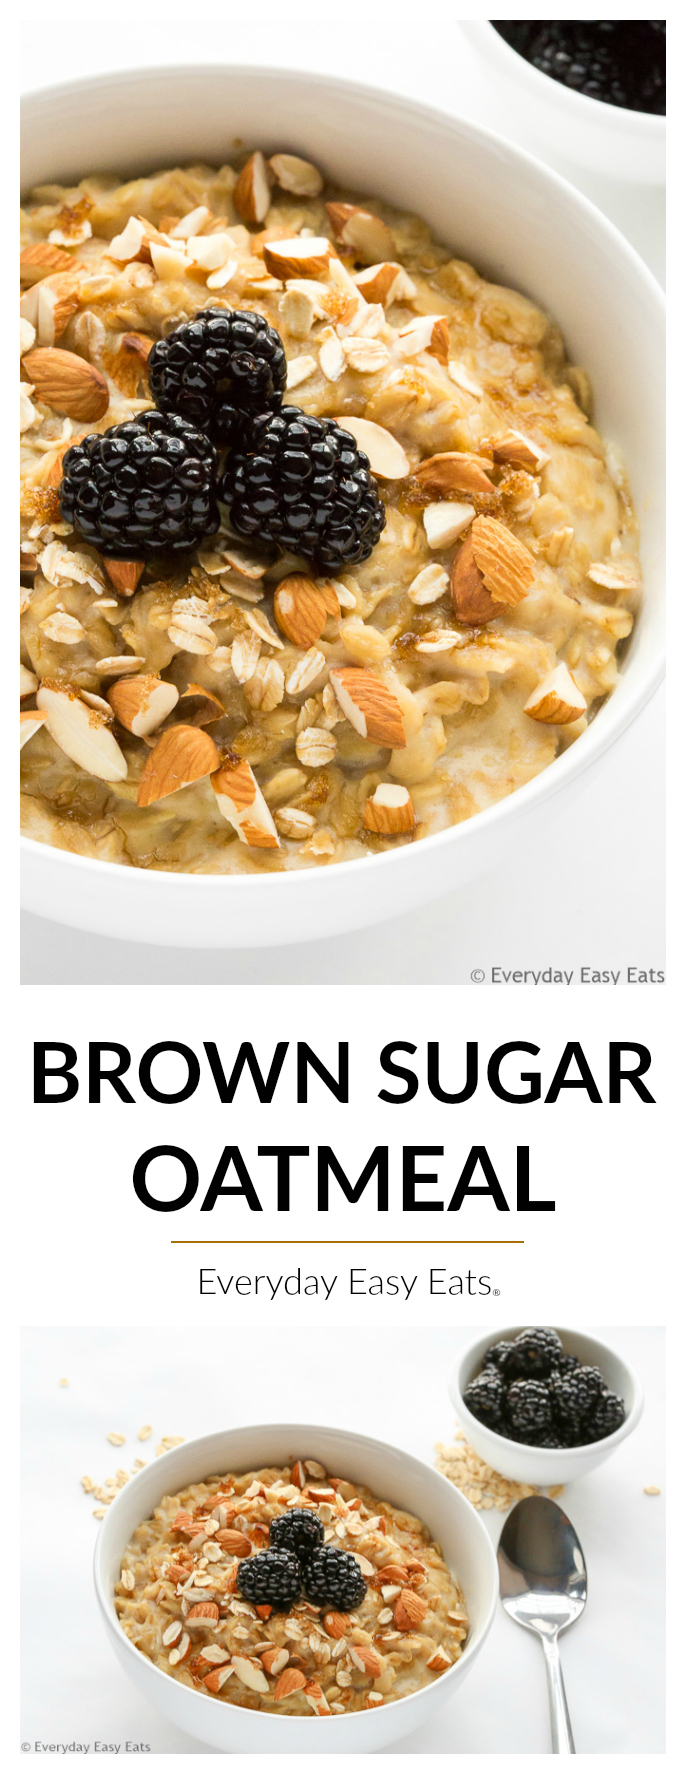 This Brown Sugar Oatmeal recipe makes the best, creamiest oatmeal ever. A nourishing, satisfying breakfast that requires only 5 ingredients and 15 minutes to make!   EverydayEasyEats.com